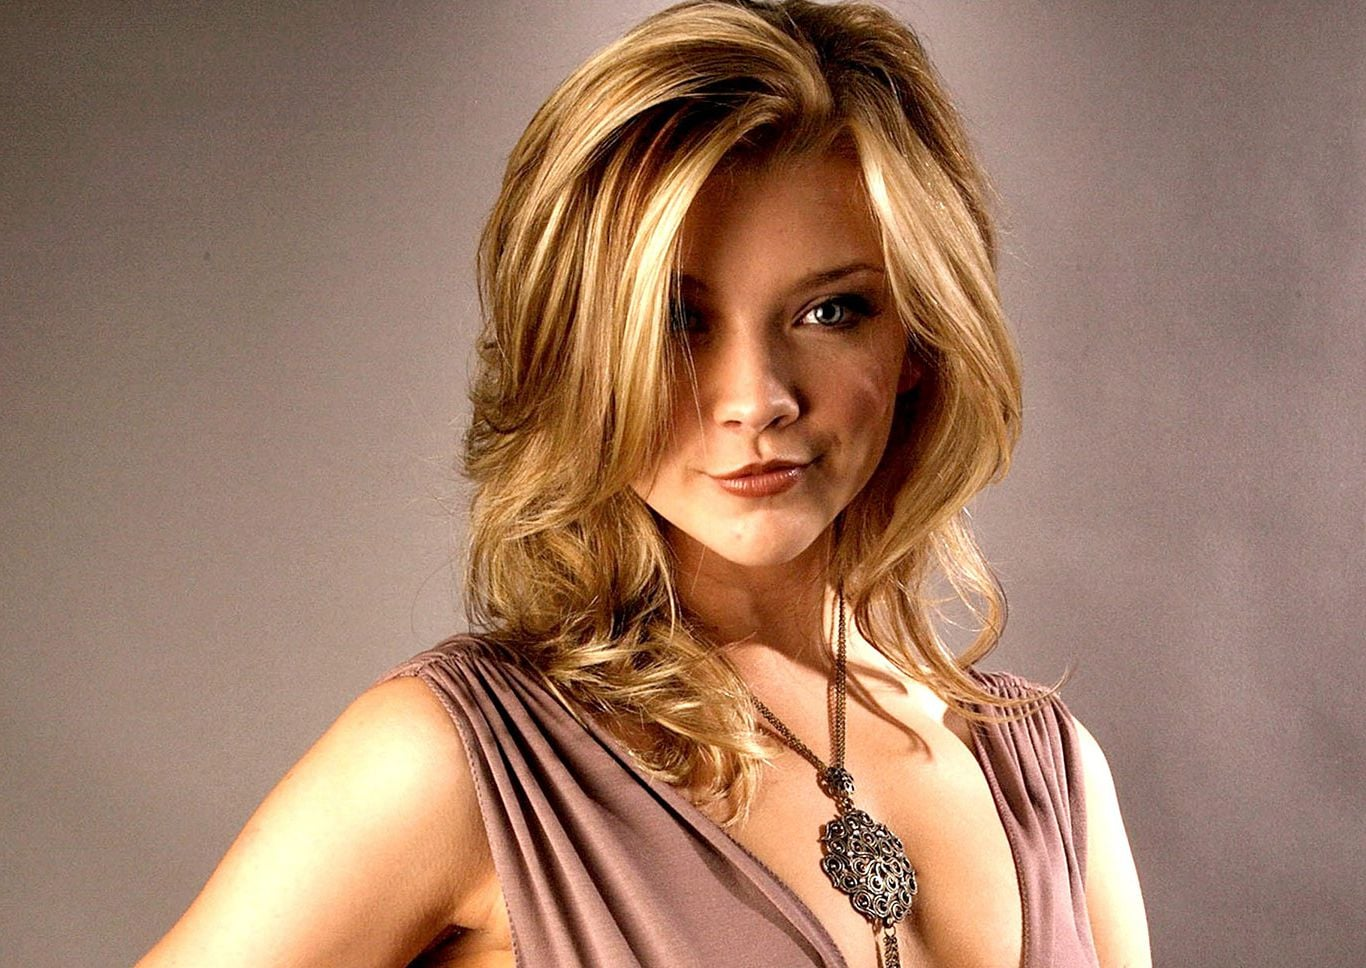 Natalie Dormer necklace pictures